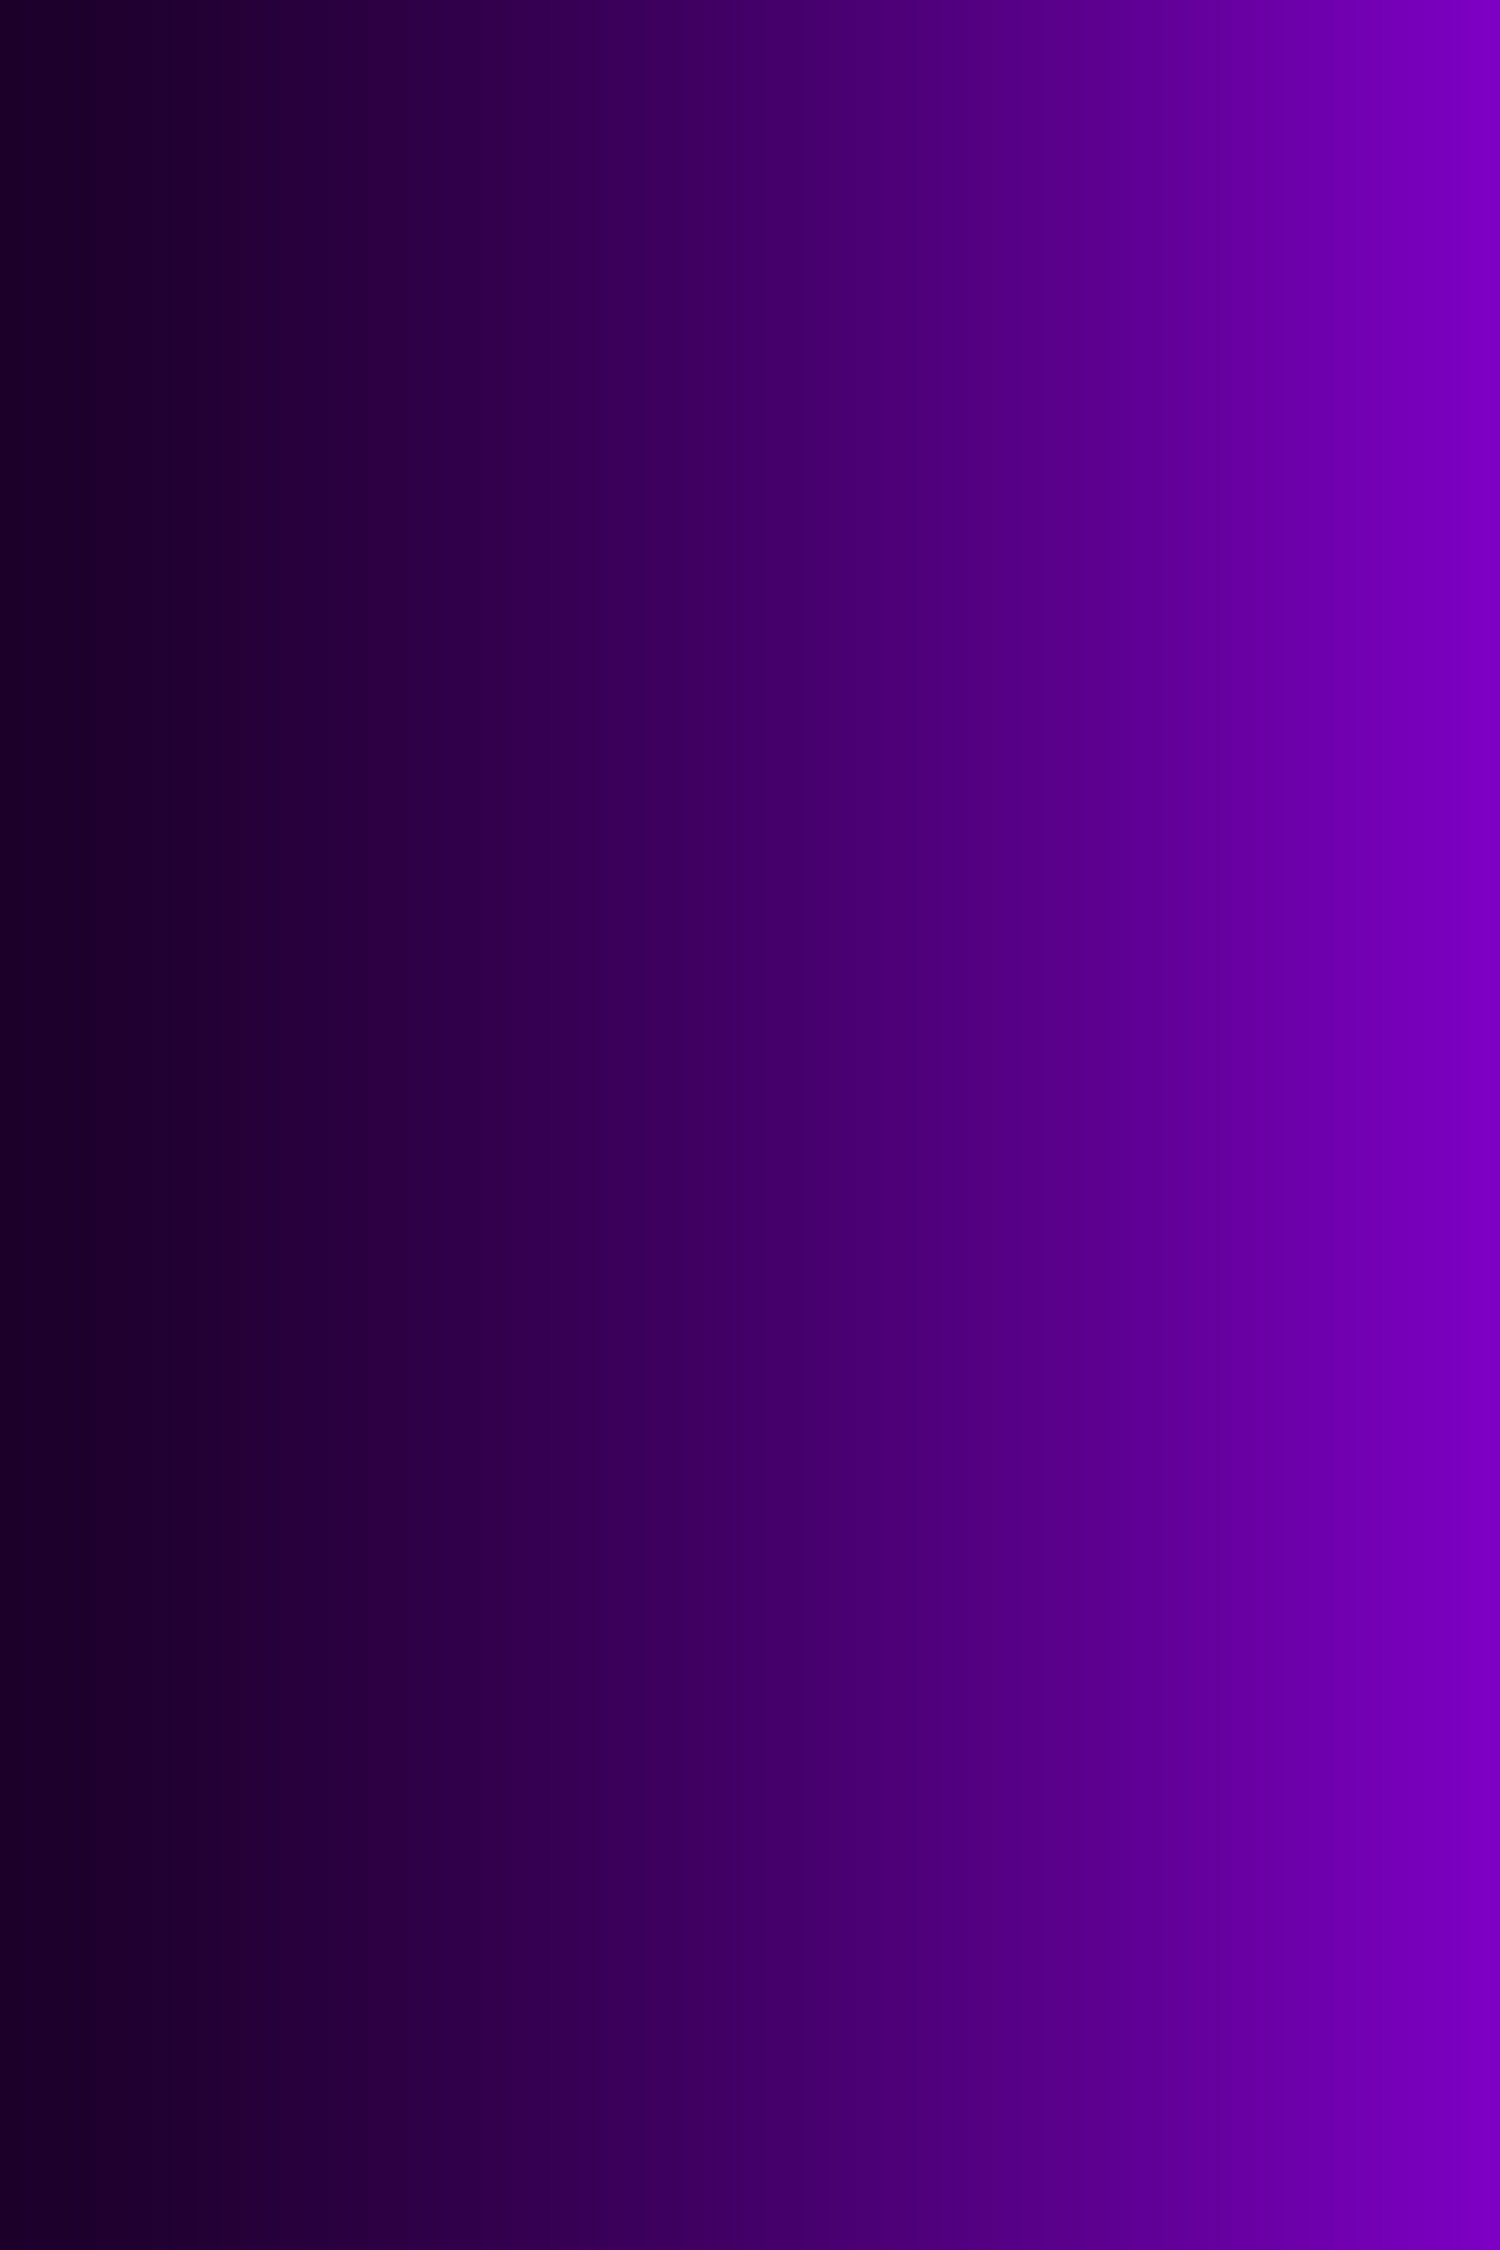 abstract purple gra nt background vector